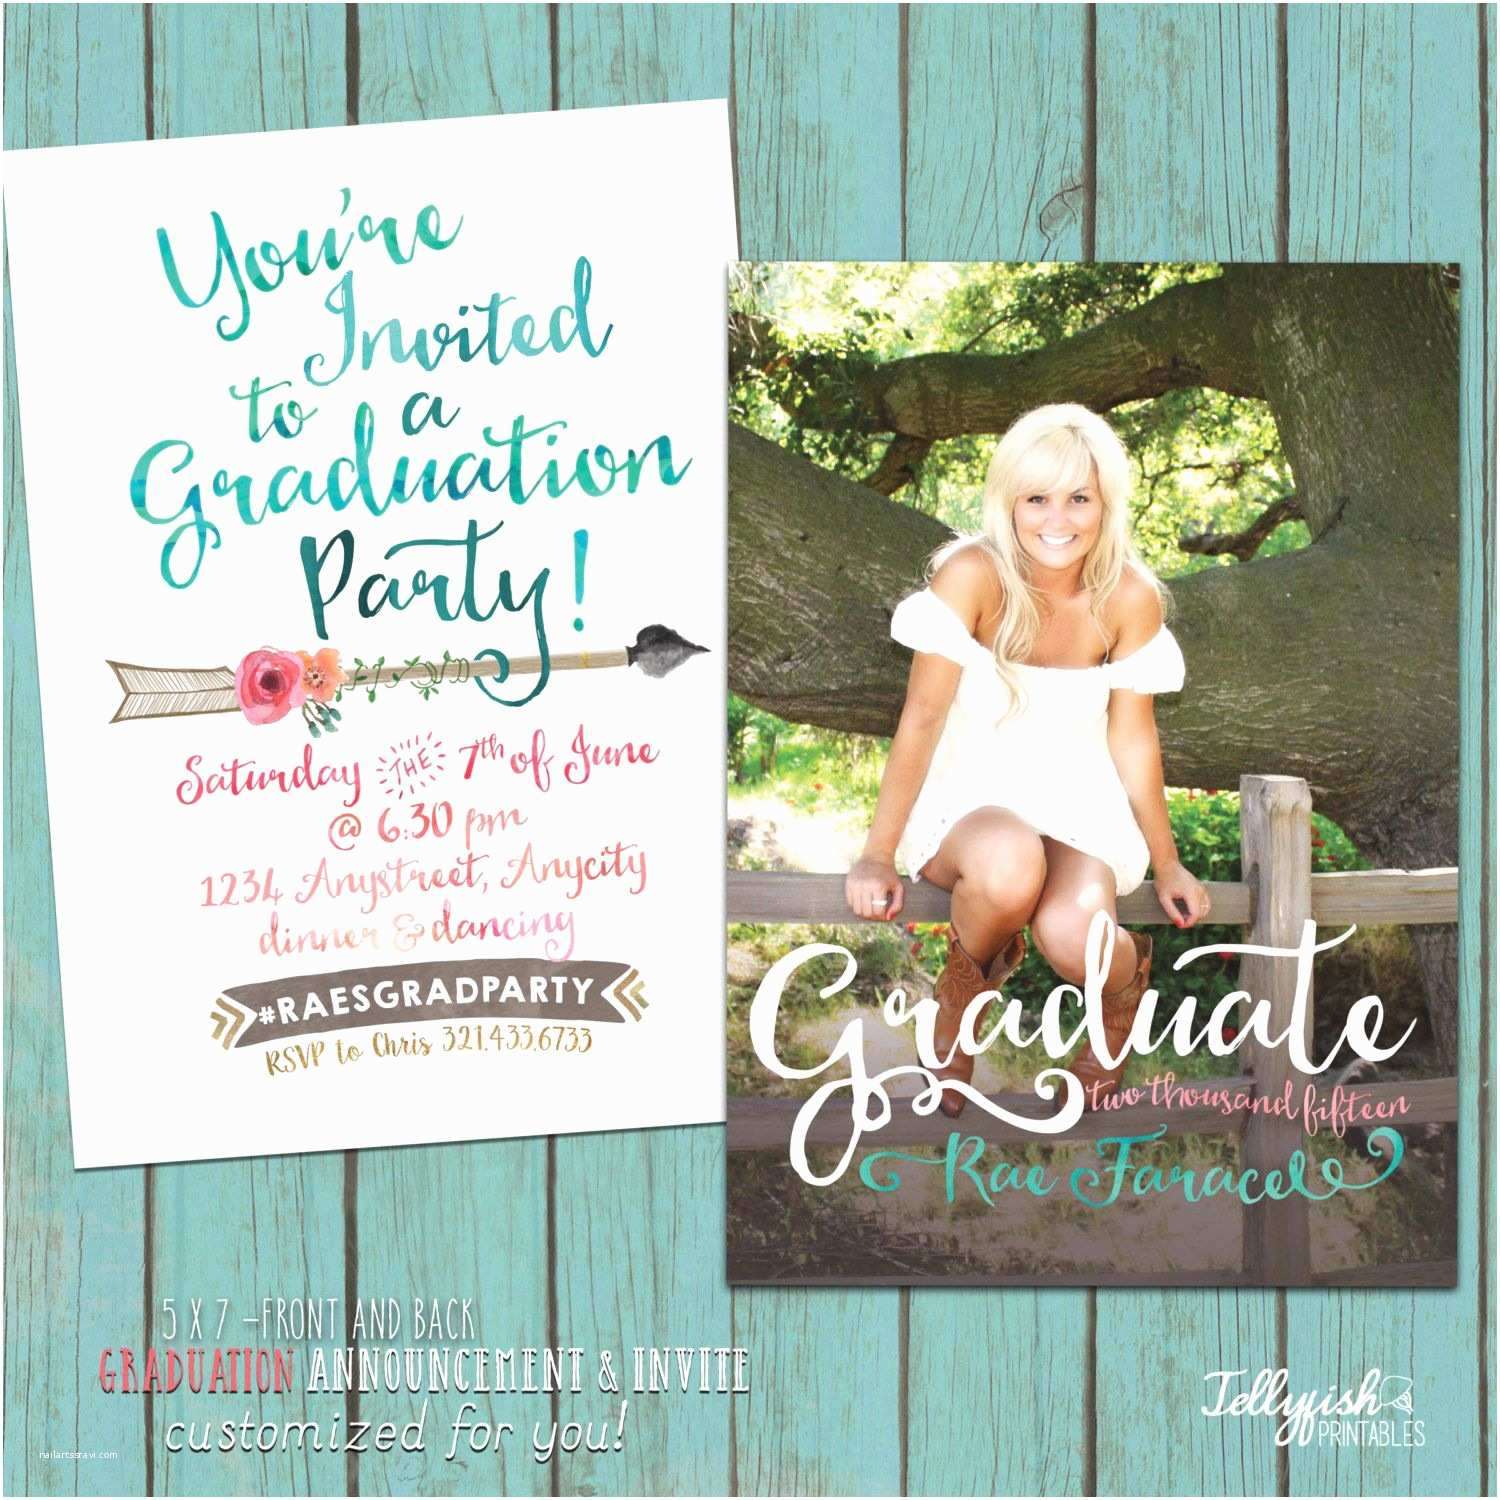 Online Graduation Invitations Graduation Invitation Template Graduation Invitation